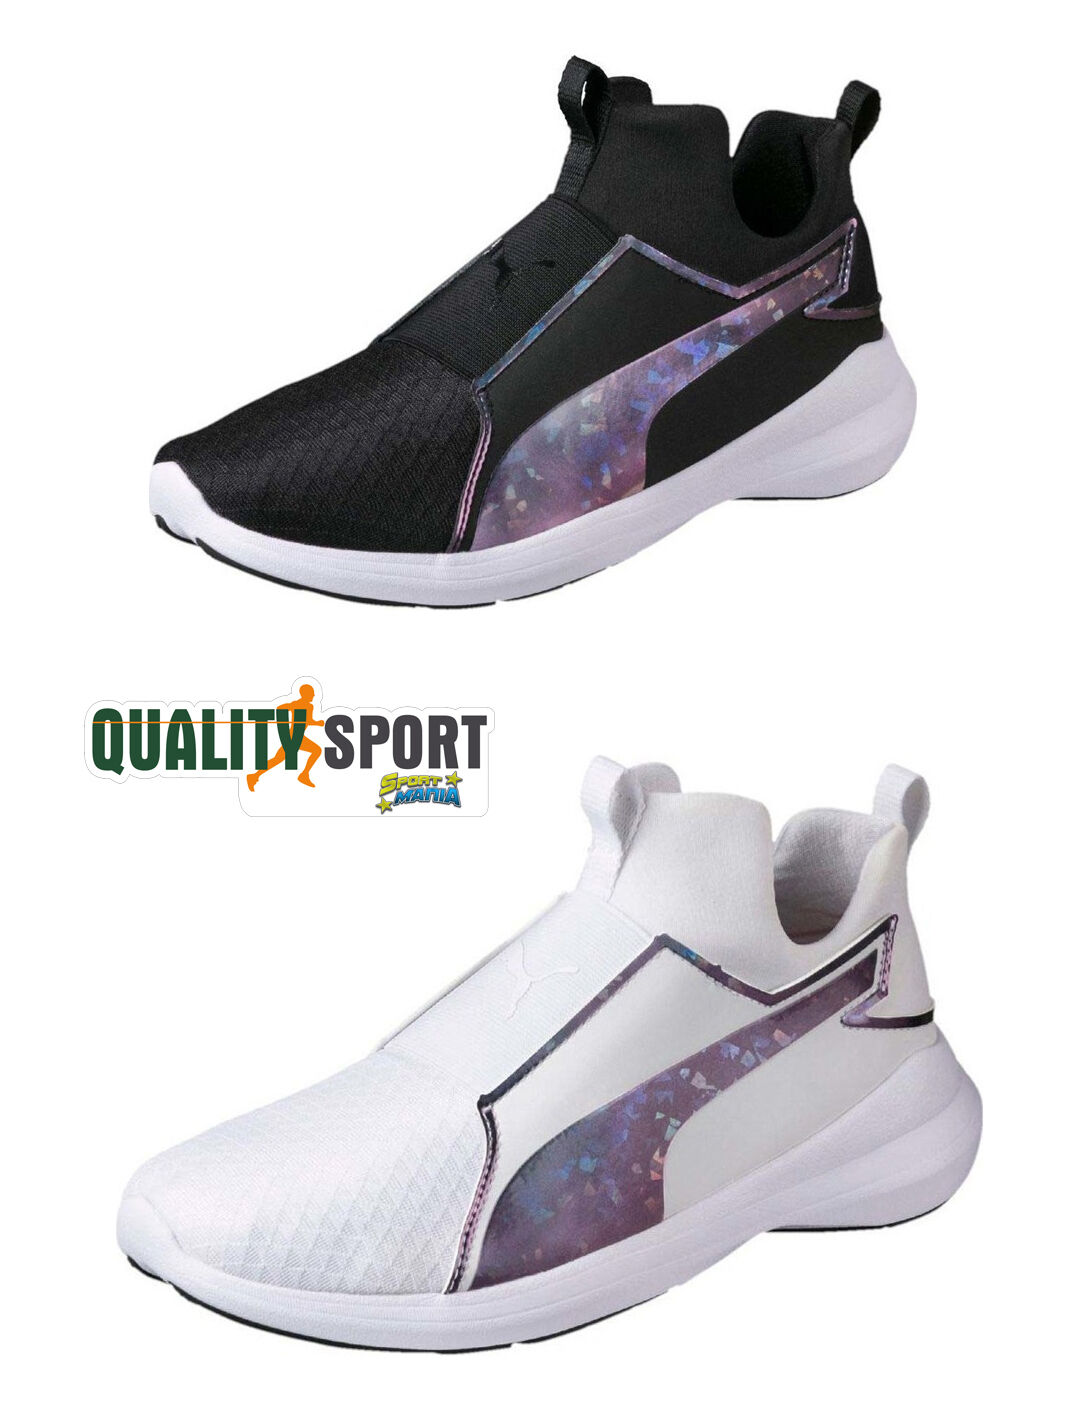 Puma Rebel Mid + SoftForm Sportive Bianco Nero Donna Scarpe Sportive SoftForm Sneakers 364556 bf0eef